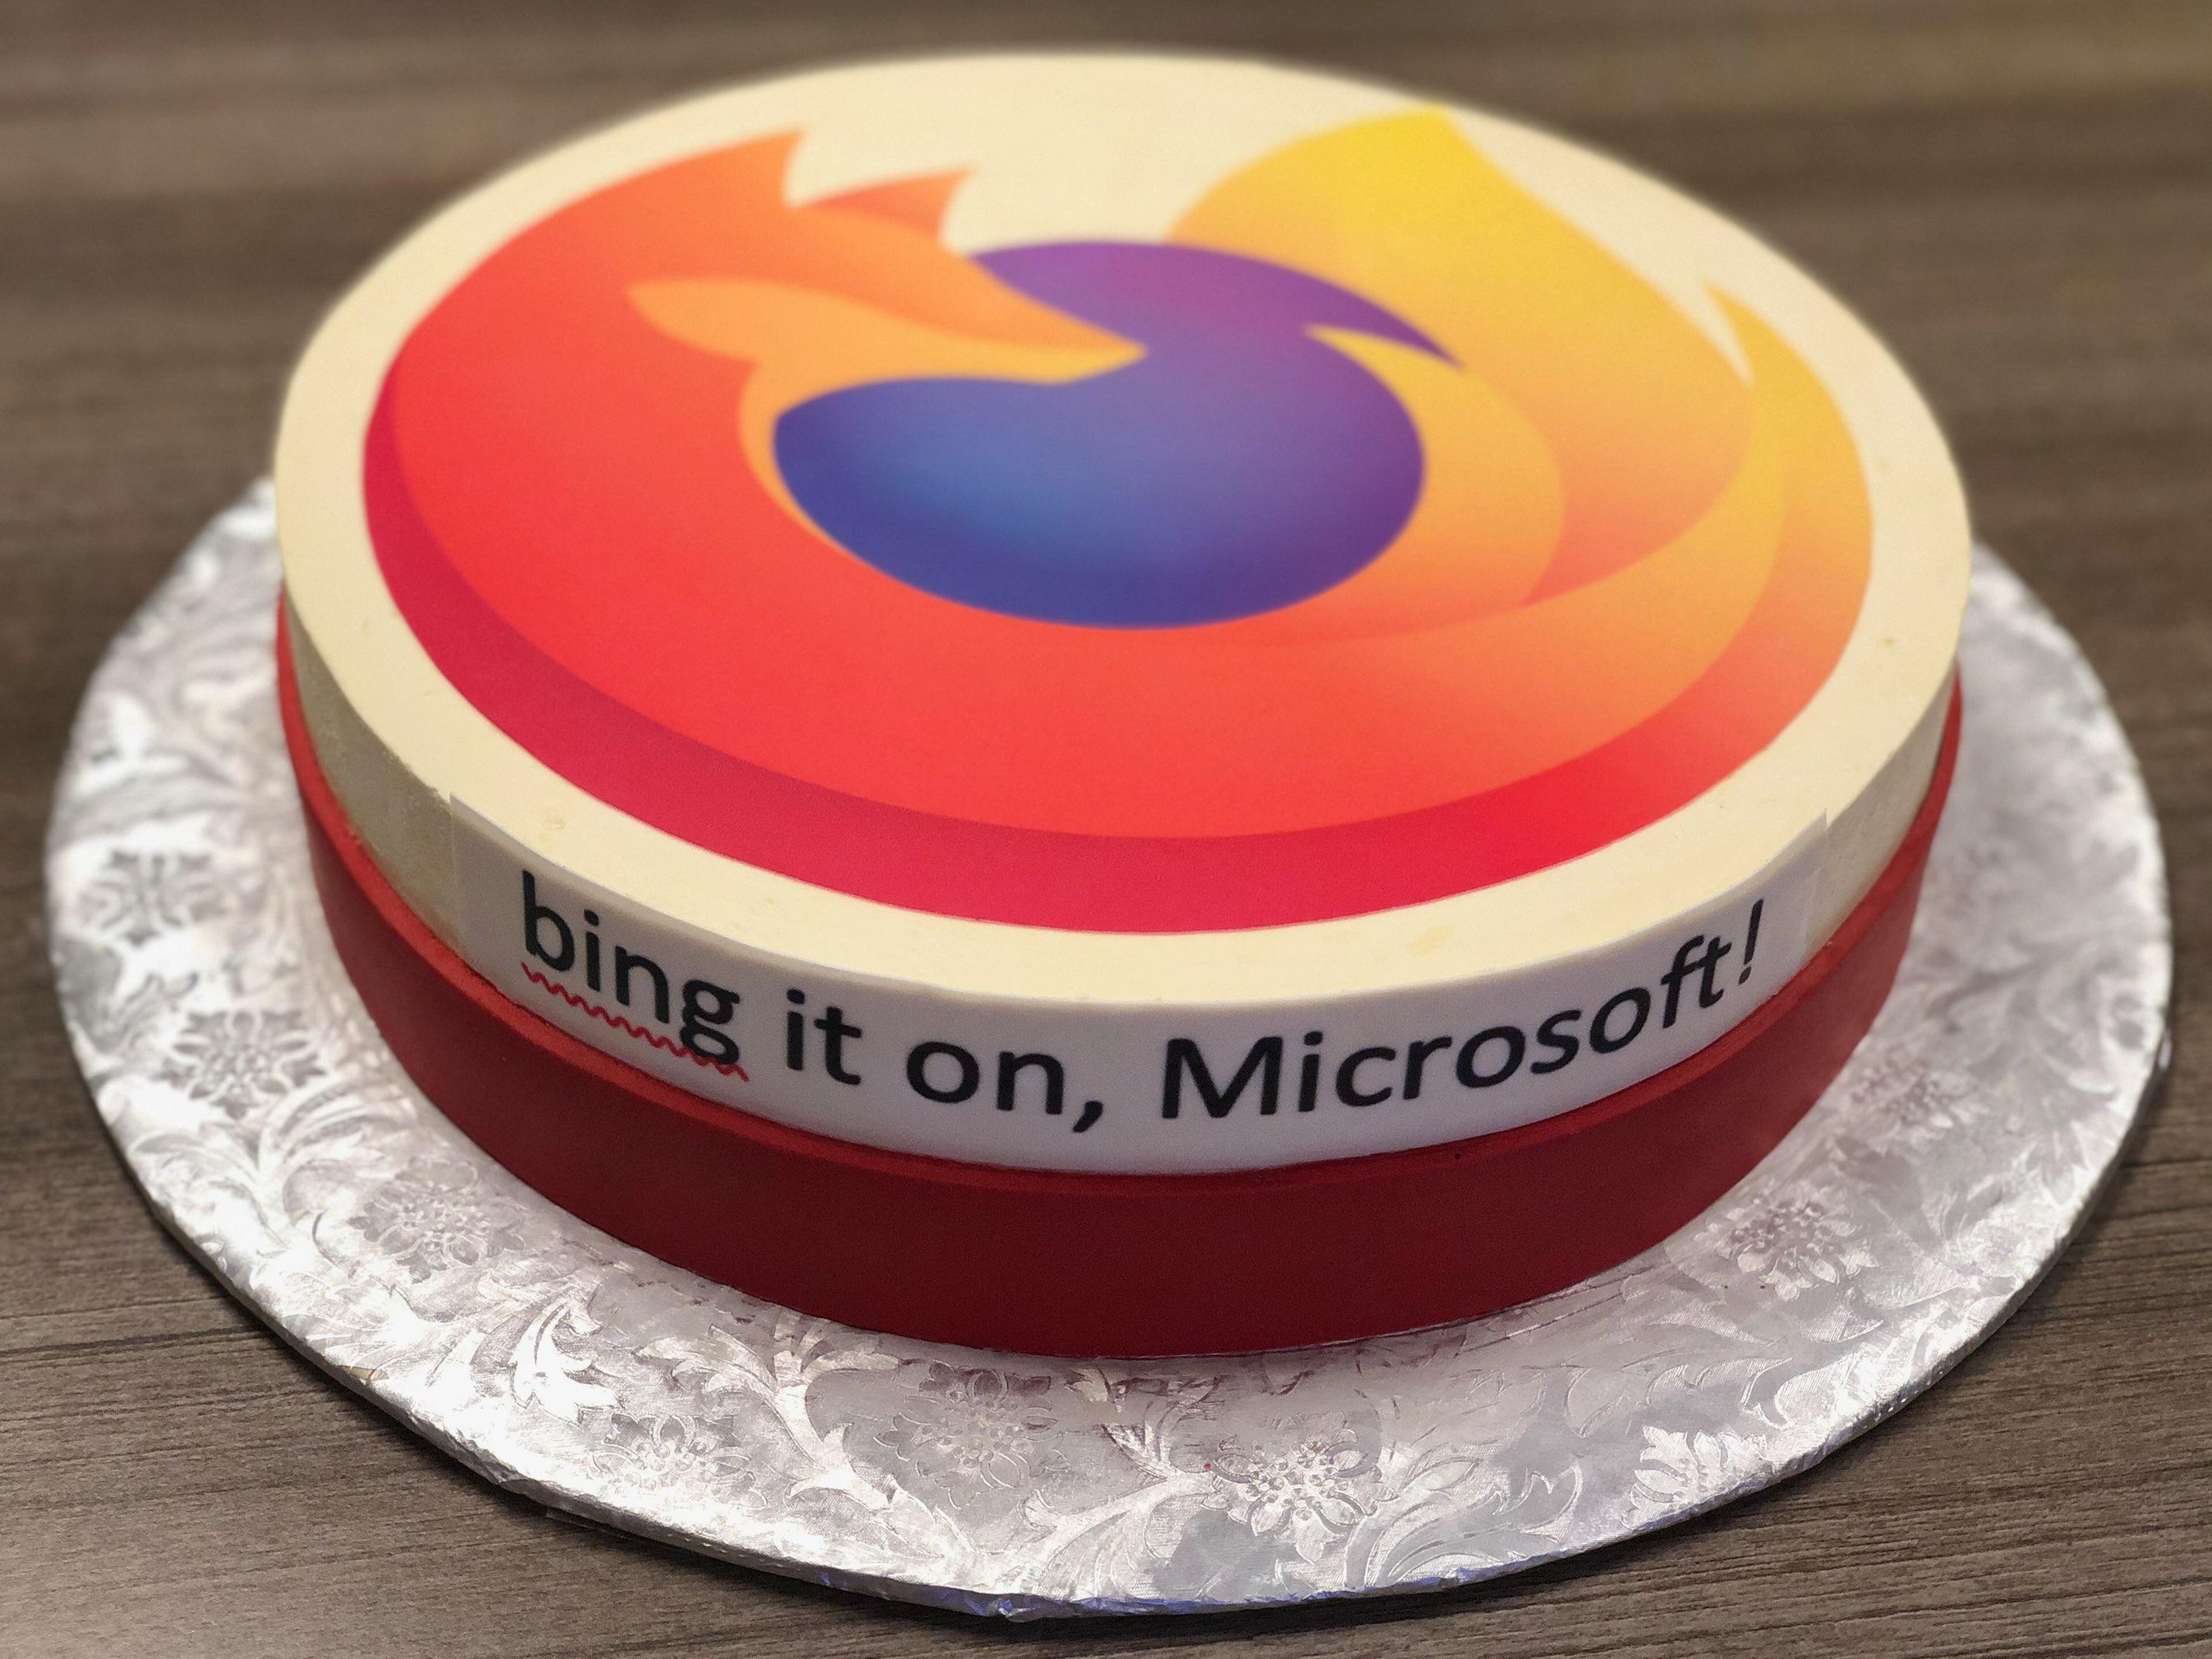 google-mozilla-send-microsoft-cakes-for-launching-new-edge-browser-528955-3.jpg